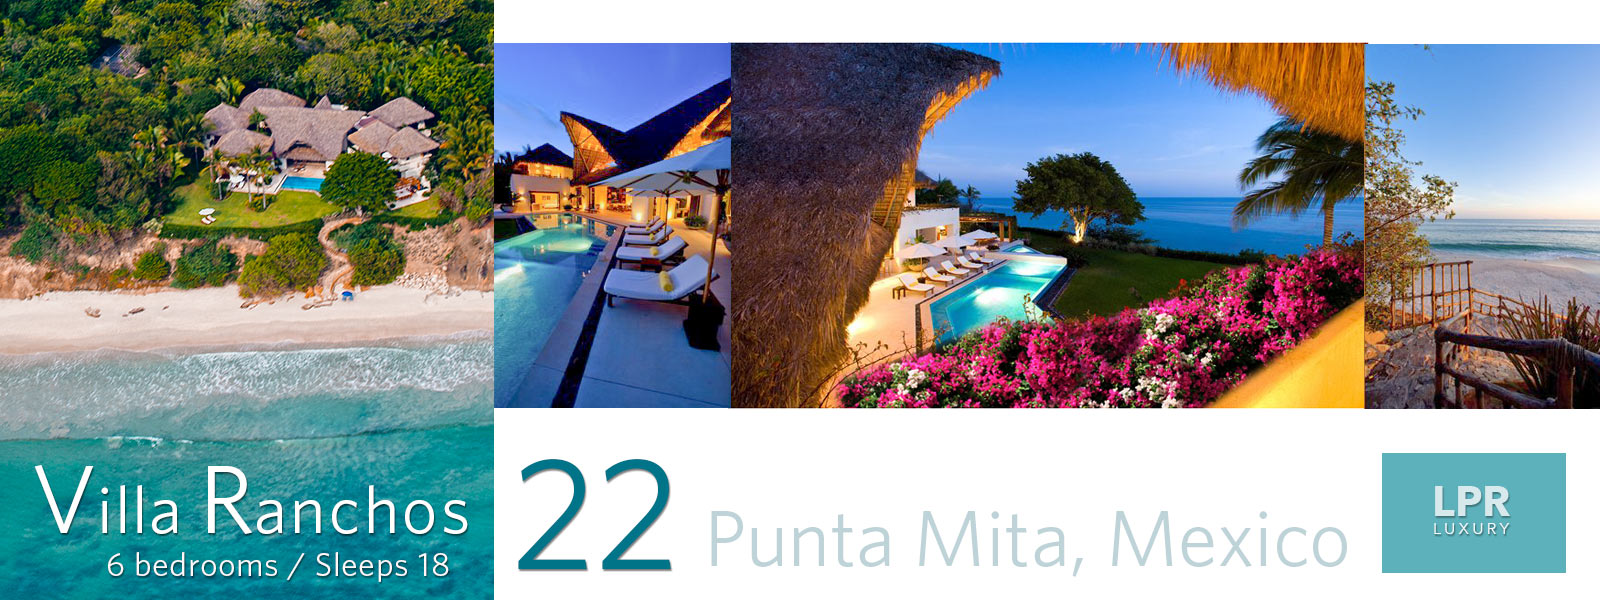 Villa Ranchos 22 at the Four Seasons / St. Regis Punta Mita Resort Mexico